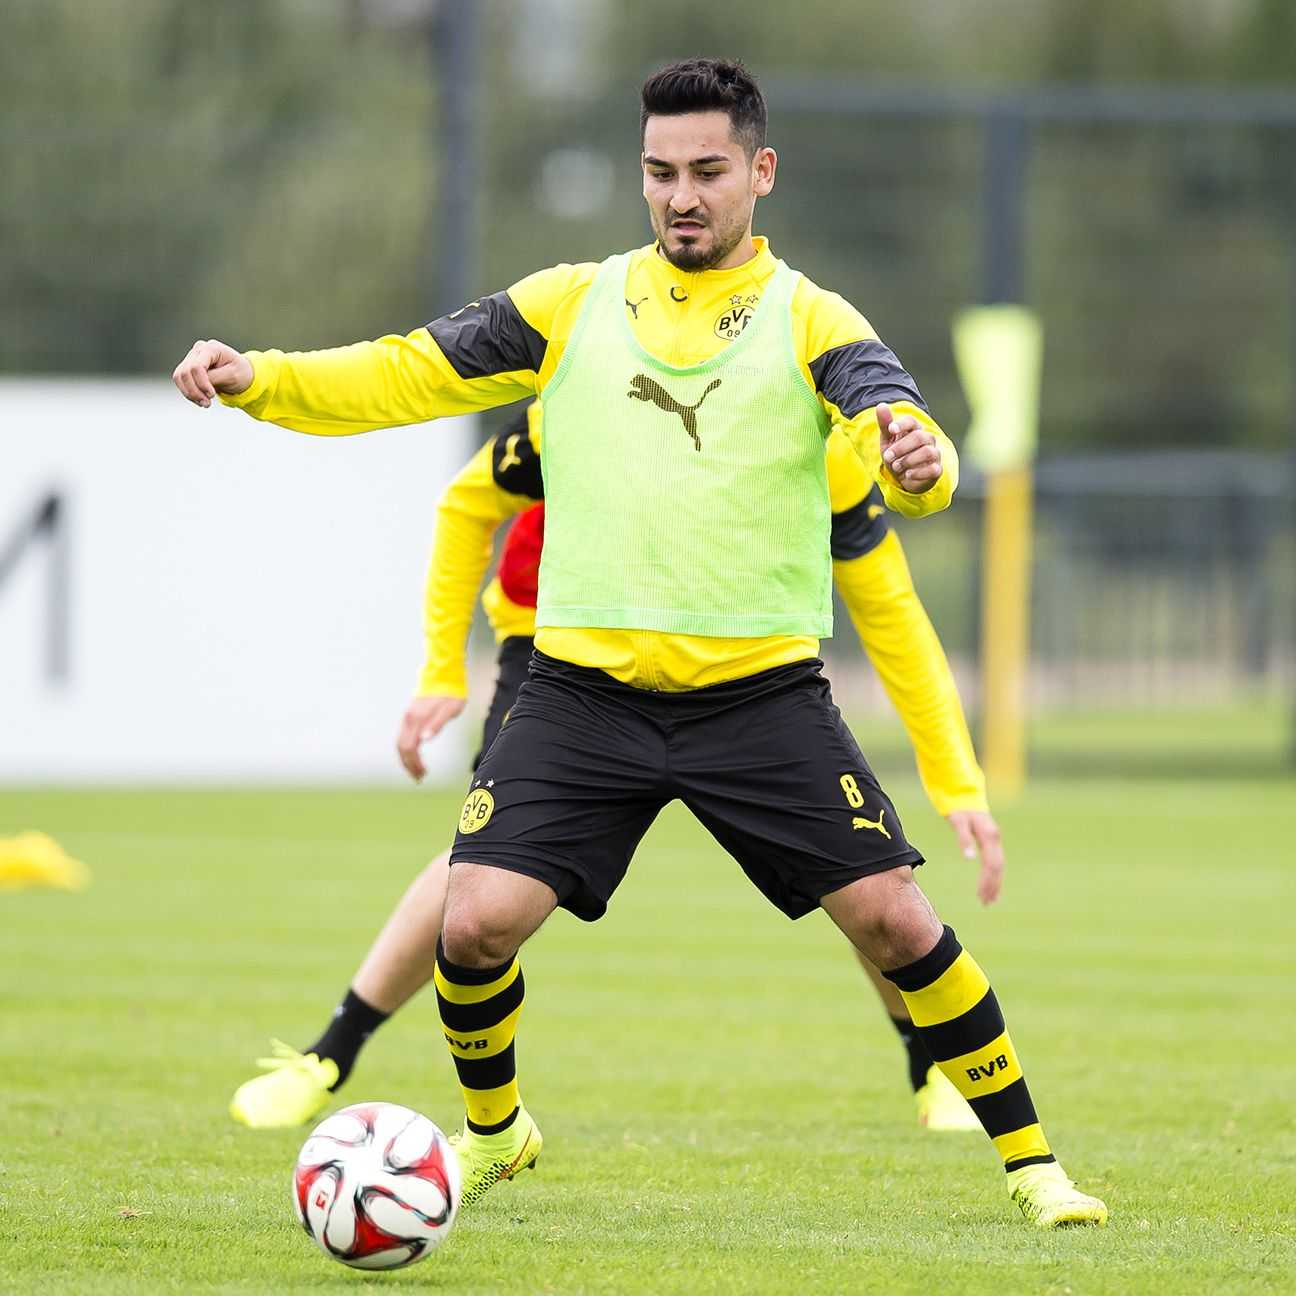 Ilkay Gundogan has been out of action for over a year, but now looks ready to come back into the Dortmund squad.